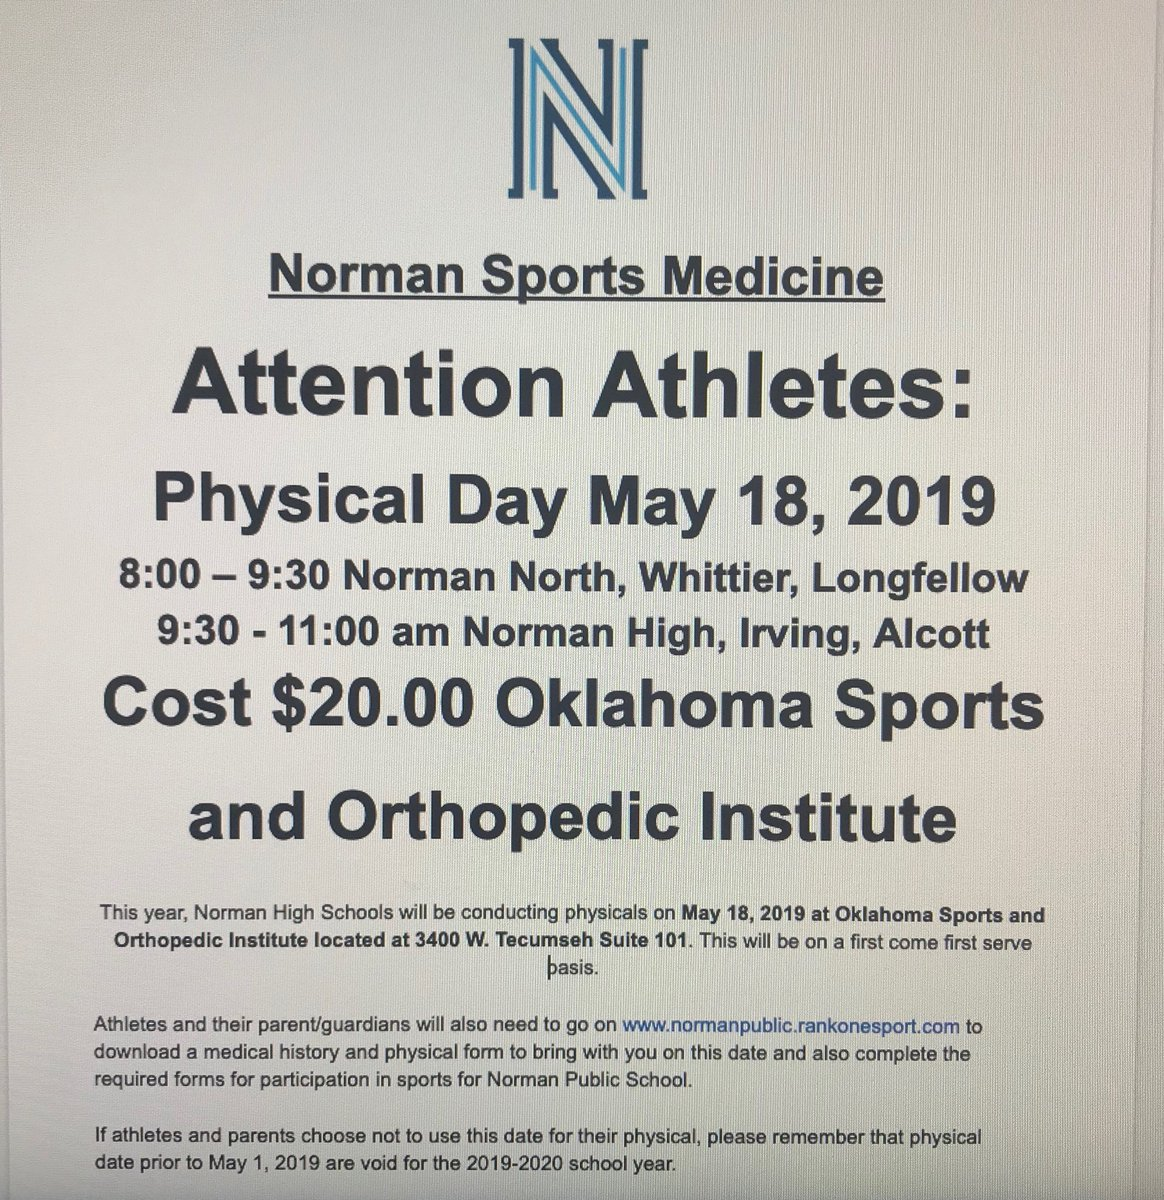 sports physical form oklahoma  Norman Sports Med (@nomansportmed) | Twitter